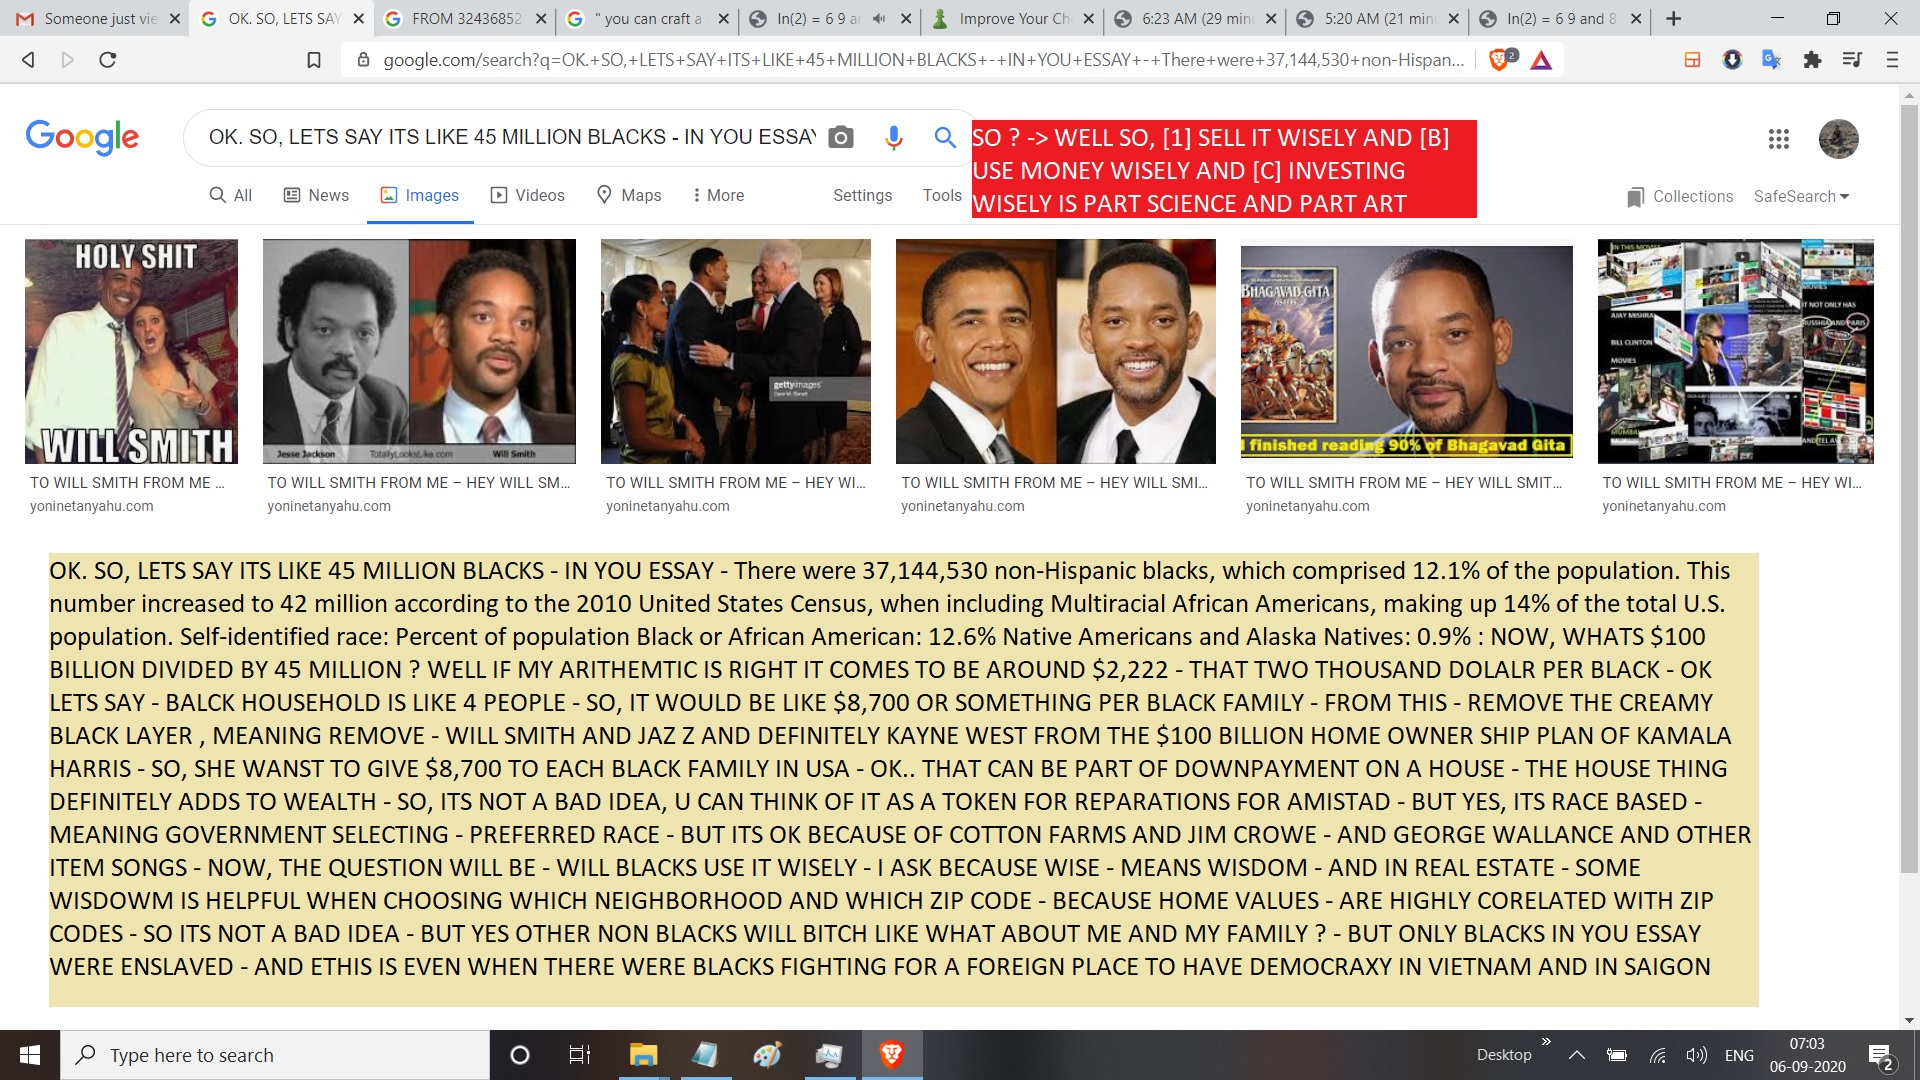 OK. SO, LETS SAY ITS LIKE 45 MILLION BLACKS - IN YOU ESSAY - There were 37,144,530 non-Hispanic blacks, which comprised 12.1% of the population. This number increased to 42 million according to the 2010 United States Census, when including Multiracial African Americans, making up 14% of the total U.S. population. Self-identified race: Percent of population Black or African American: 12.6% Native Americans and Alaska Natives: 0.9% : NOW, WHATS $100 BILLION DIVIDED BY 45 MILLION ? WELL IF MY ARITHEMTIC IS RIGHT IT COMES TO BE AROUND $2,222 - THAT TWO THOUSAND DOLALR PER BLACK - OK LETS SAY - BALCK HOUSEHOLD IS LIKE 4 PEOPLE - SO, IT WOULD BE LIKE $8,700 OR SOMETHING PER BLACK FAMILY - FROM THIS - REMOVE THE CREAMY BLACK LAYER , MEANING REMOVE - WILL SMITH AND JAZ Z AND DEFINITELY KAYNE WEST FROM THE $100 BILLION HOME OWNER SHIP PLAN OF KAMALA HARRIS - SO, SHE WANST TO GIVE $8,700 TO EACH BLACK FAMILY IN USA - OK.. THAT CAN BE PART OF DOWNPAYMENT ON A HOUSE - THE HOUSE THING DEFINITELY ADDS TO WEALTH - SO, ITS NOT A BAD IDEA, U CAN THINK OF IT AS A TOKEN FOR REPARATIONS FOR AMISTAD - BUT YES, ITS RACE BASED - MEANING GOVERNMENT SELECTING - PREFERRED RACE - BUT ITS OK BECAUSE OF COTTON FARMS AND JIM CROWE - AND GEORGE WALLANCE AND OTHER ITEM SONGS - NOW, THE QUESTION WILL BE - WILL BLACKS USE IT WISELY - I ASK BECAUSE WISE - MEANS WISDOM - AND IN REAL ESTATE - SOME WISDOWM IS HELPFUL WHEN CHOOSING WHICH NEIGHBORHOOD AND WHICH ZIP CODE - BECAUSE HOME VALUES - ARE HIGHLY CORELATED WITH ZIP CODES - SO ITS NOT A BAD IDEA - BUT YES OTHER NON BLACKS WILL BITCH LIKE WHAT ABOUT ME AND MY FAMILY ? - BUT ONLY BLACKS IN YOU ESSAY WERE ENSLAVED - AND ETHIS IS EVEN WHEN THERE WERE BLACKS FIGHTING FOR A FOREIGN PLACE TO HAVE DEMOCRAXY IN VIETNAM AND IN SAIGON